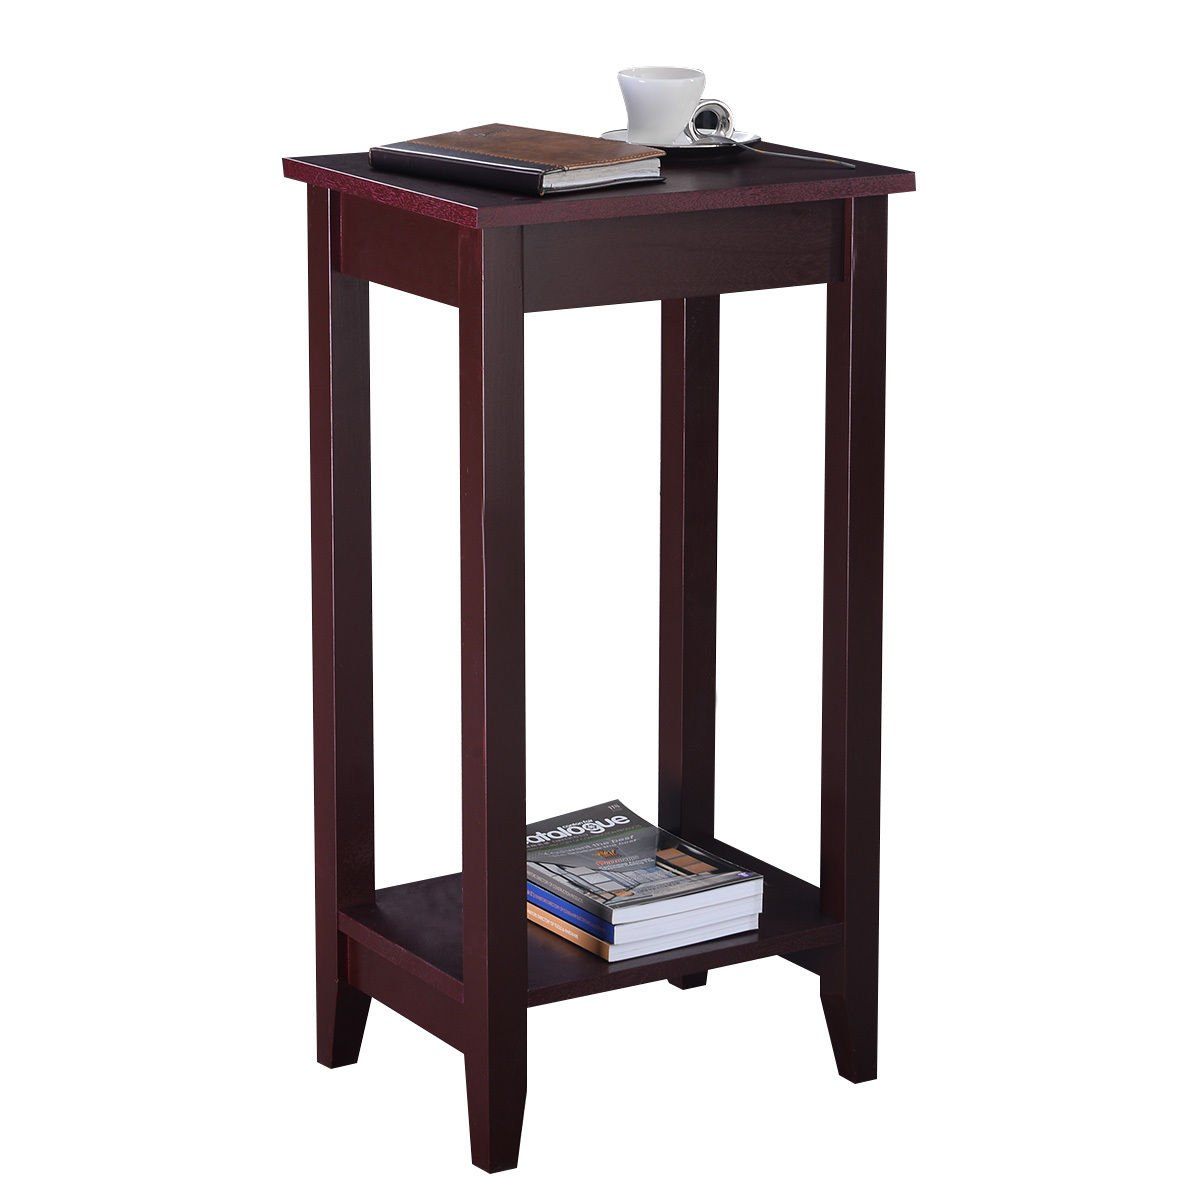 New Tall End Table Coffee Stand Night Side Nightstand Accent Furniture Brown